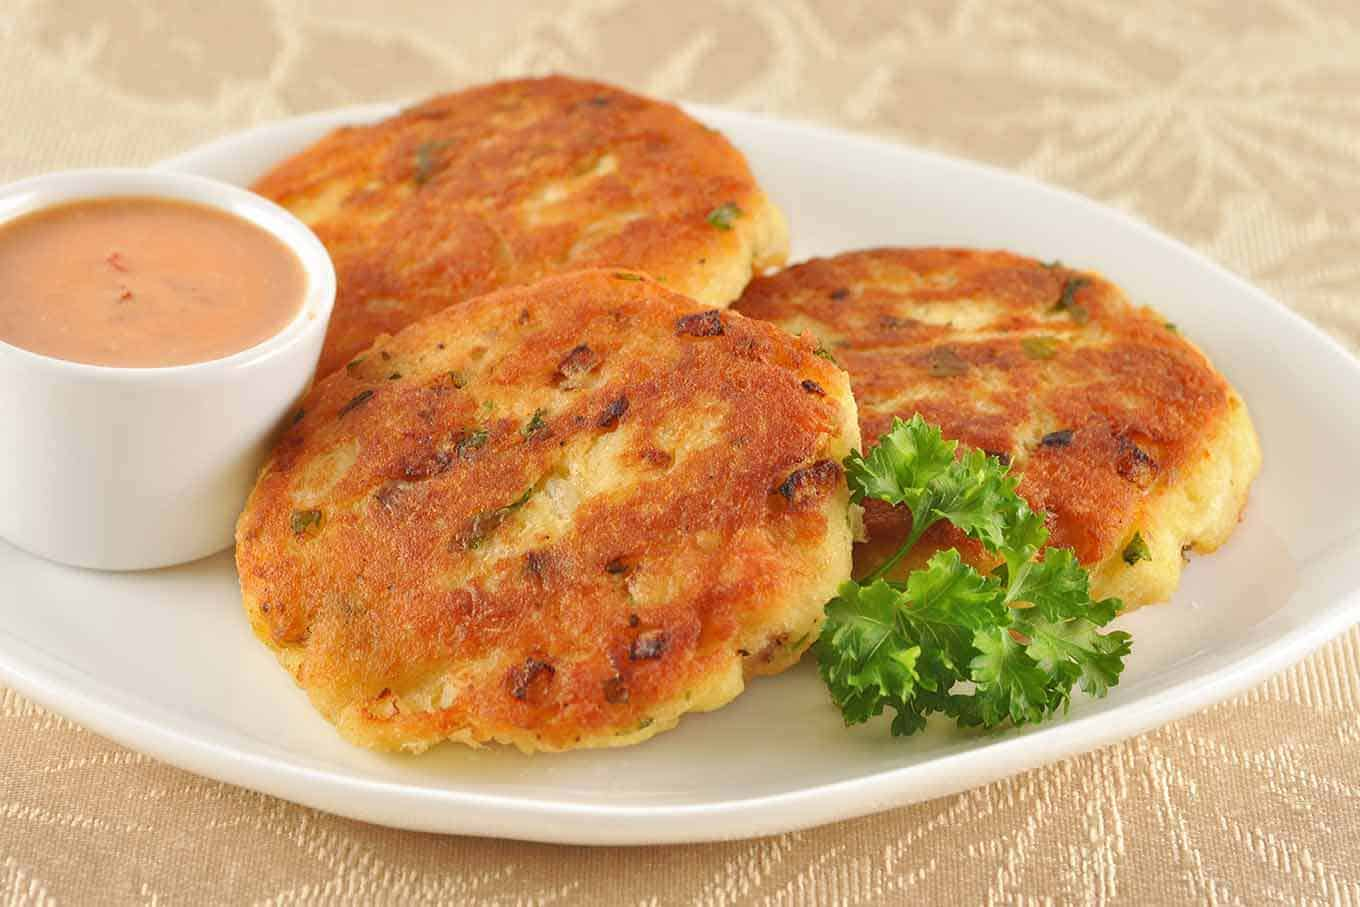 Golden fish patties with chipotle orange dipping sauce for Baked fish cakes